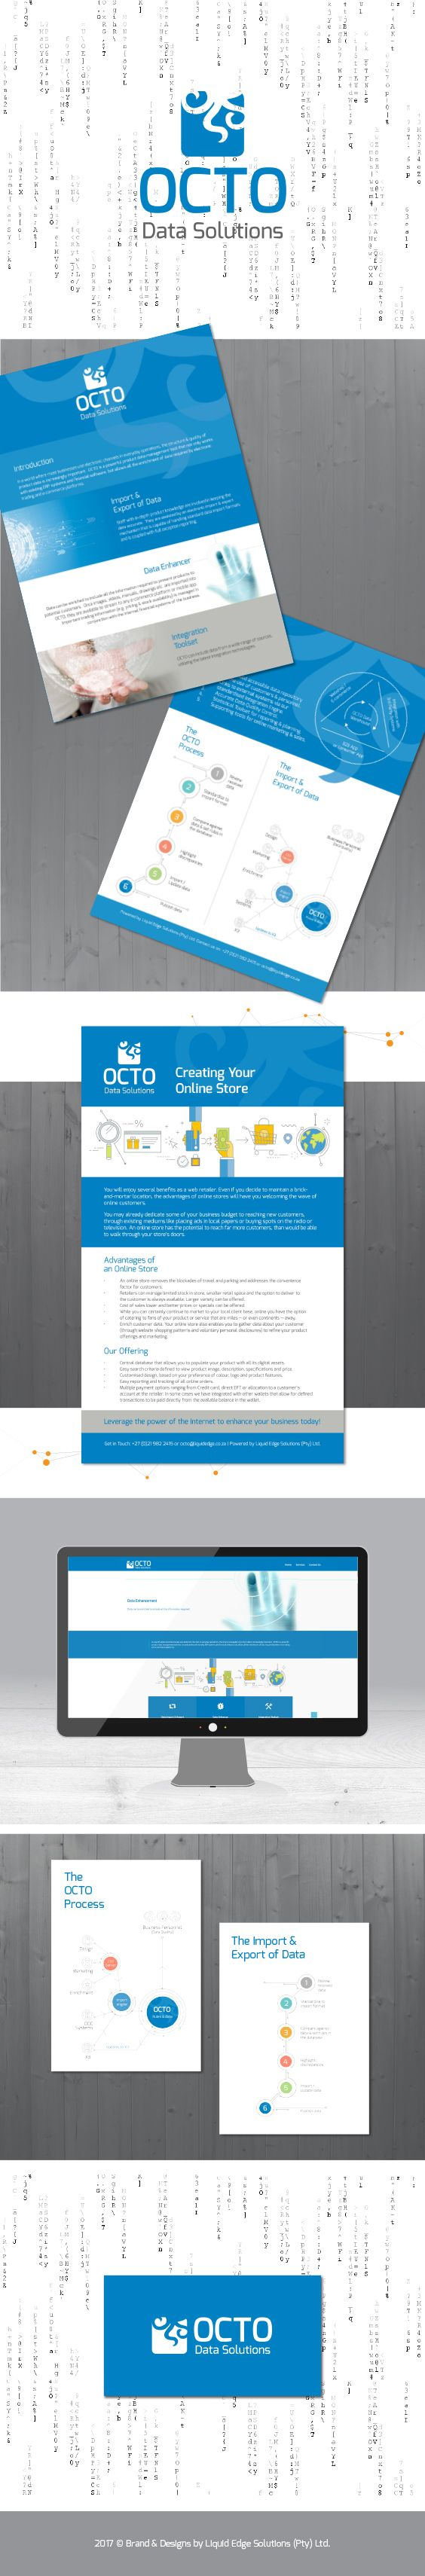 The OCTO Data Solutions brand, a fresh professional look & feel. Included the design of the logo, one-page leaflet, emailer leaflet, diagrams & website. Colour scheme white, blue & grey.